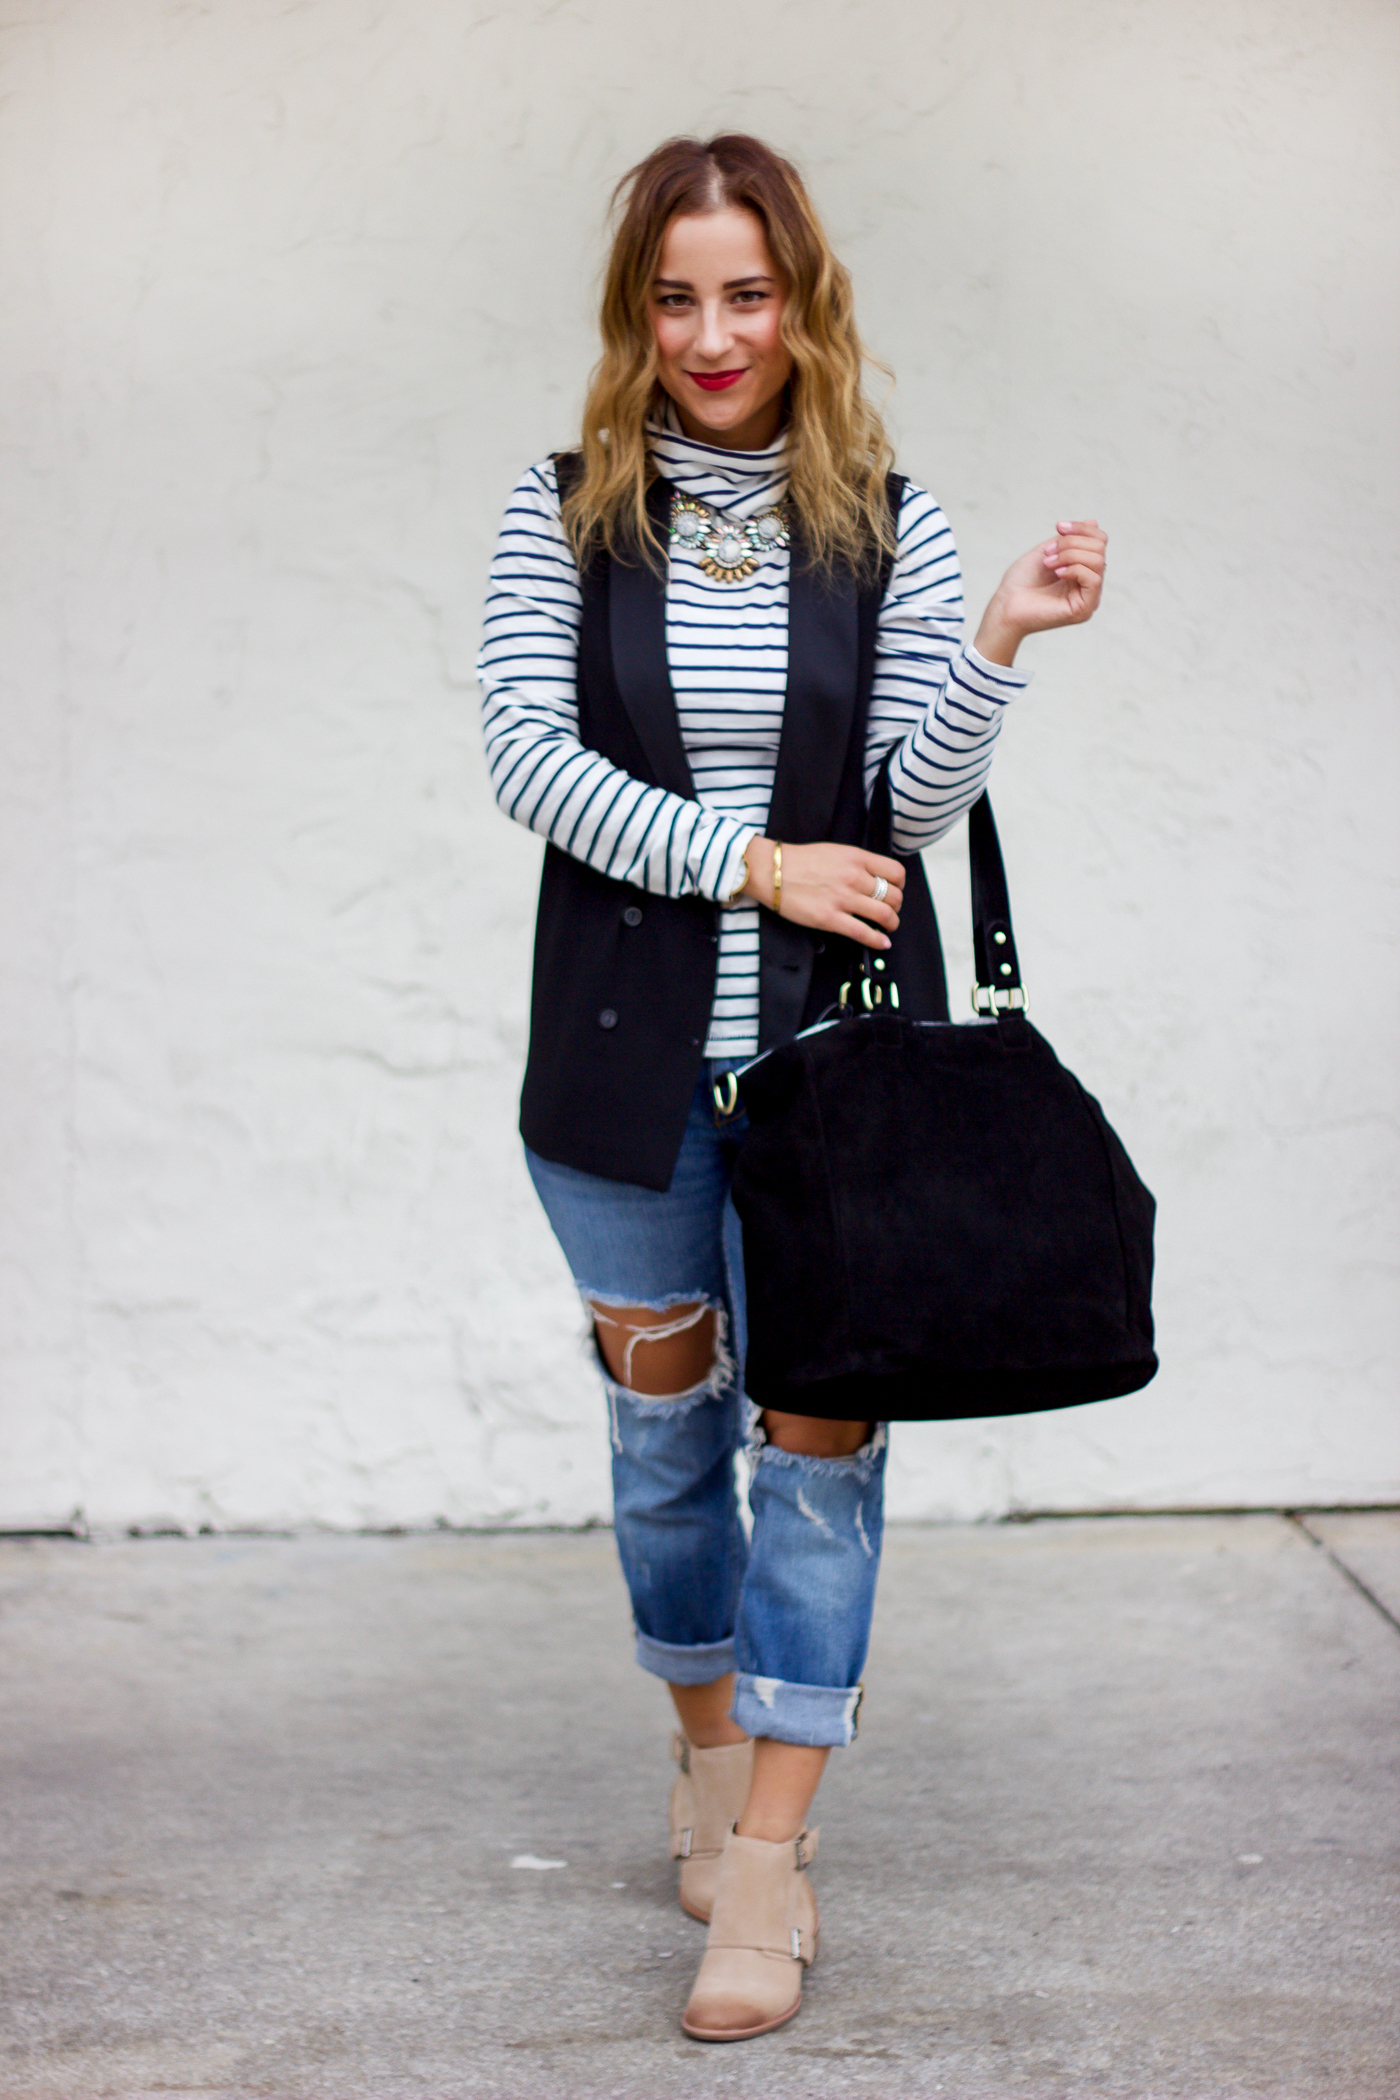 Canadian fashion blogger wearing Madewell turtleneck, Topshop black vest and Zara boyfriend jeans with rips